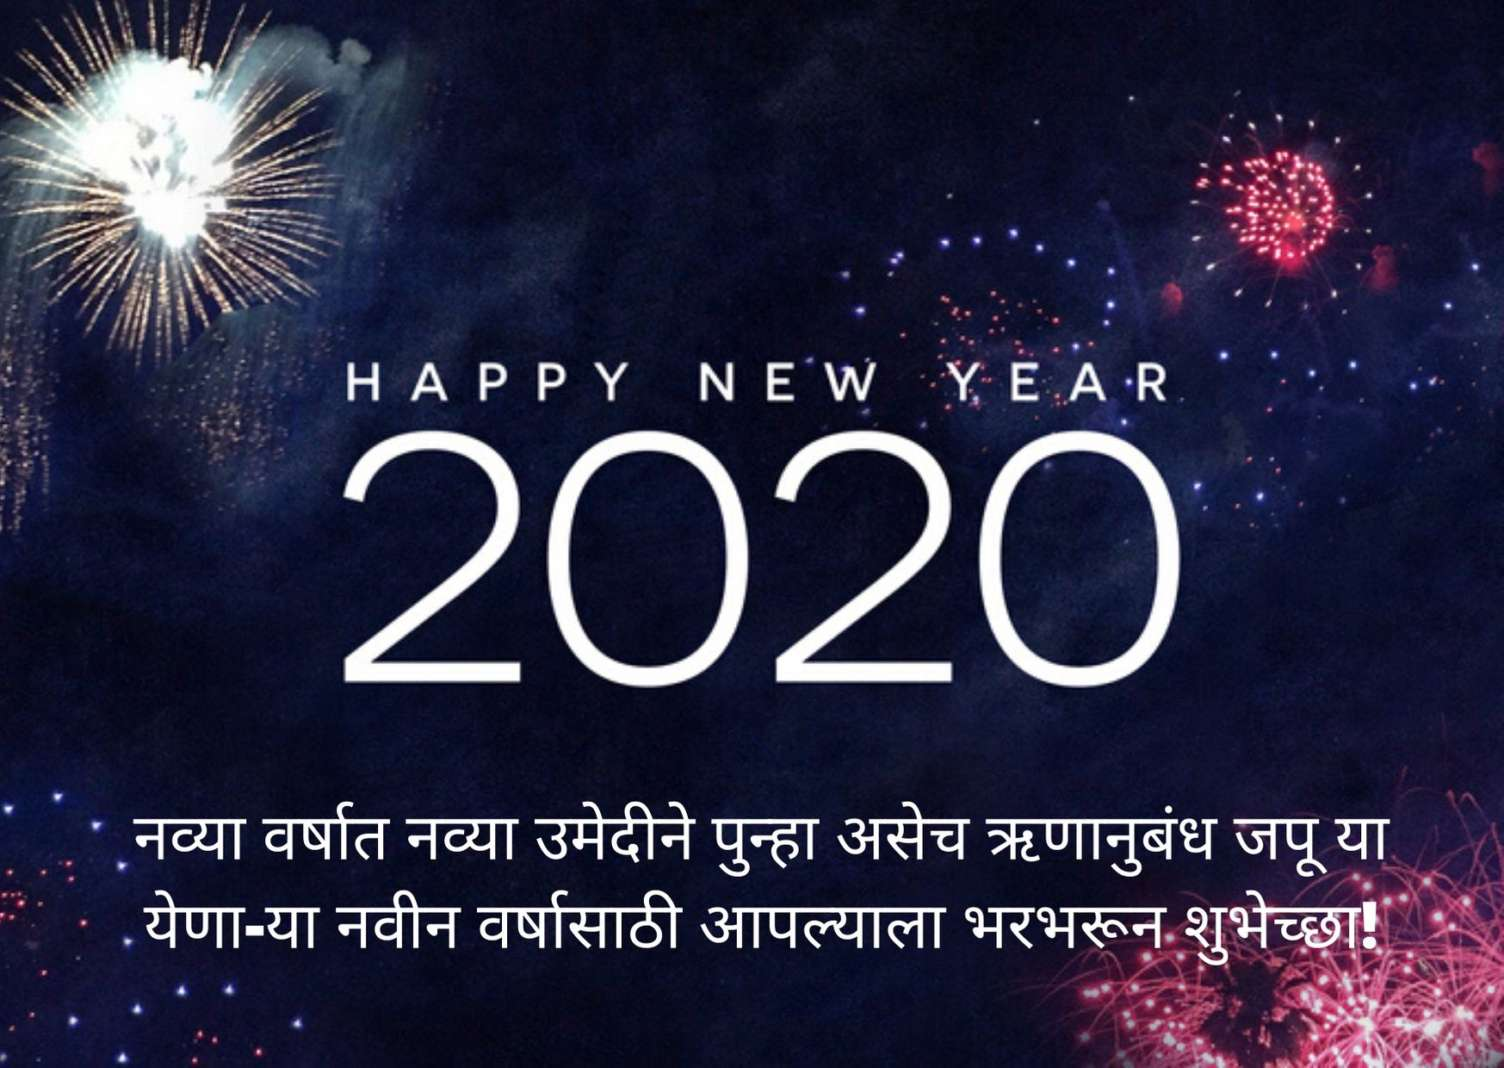 happy new year 2020 wishes quotes greetings for friends family year 2020 wishes quotes greetings